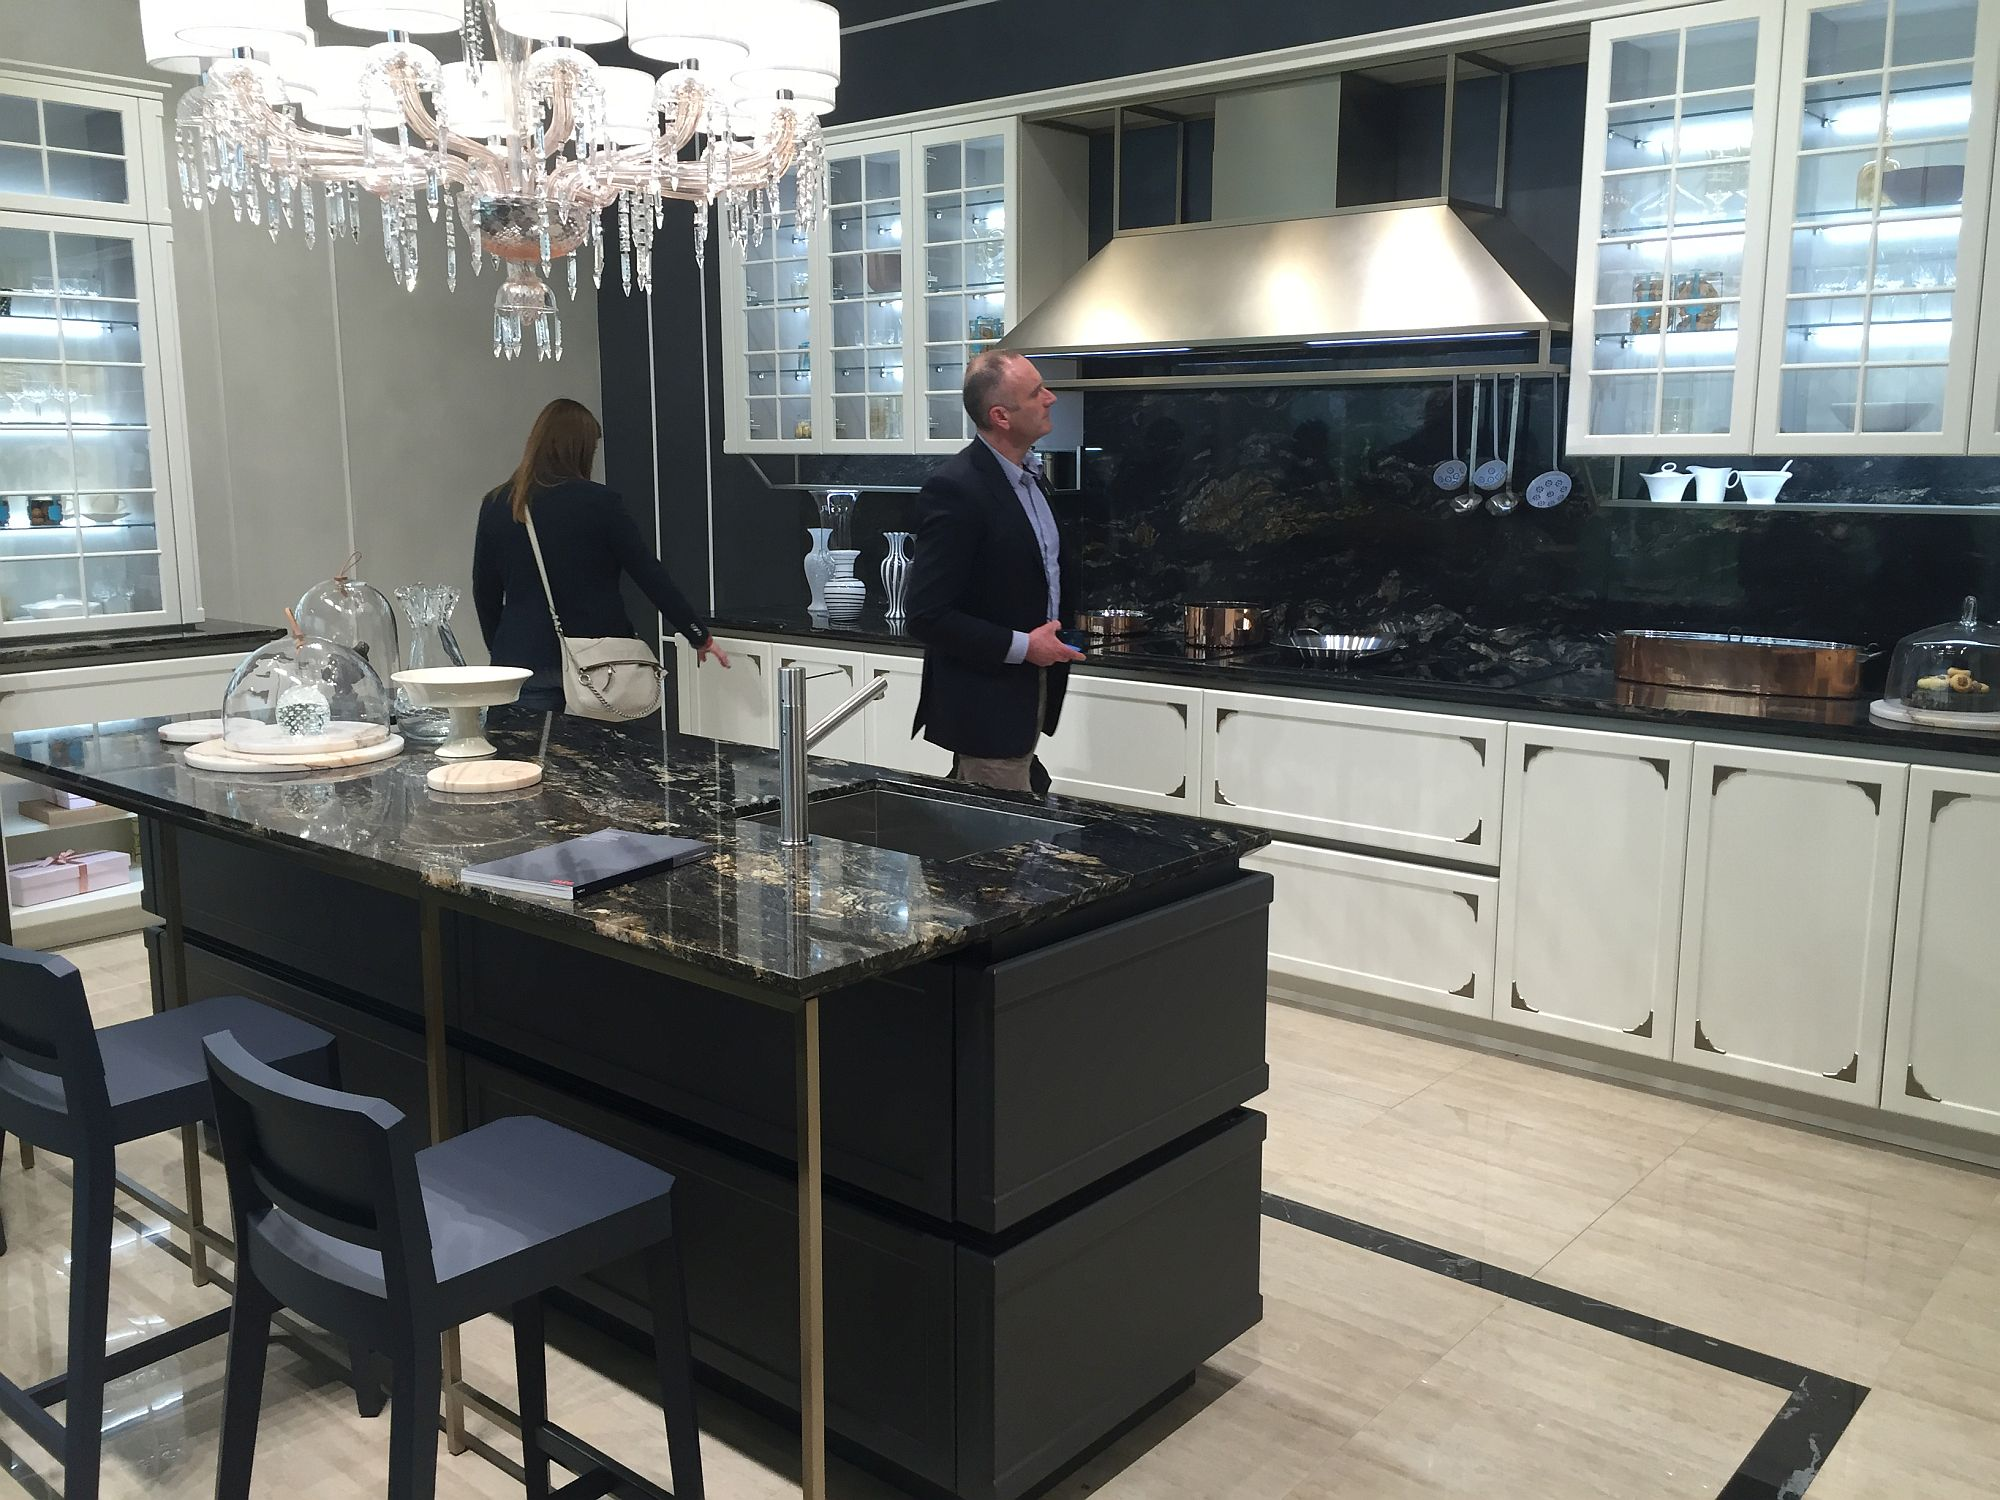 Modern classic kitchen with dark island and a stylish backdrop